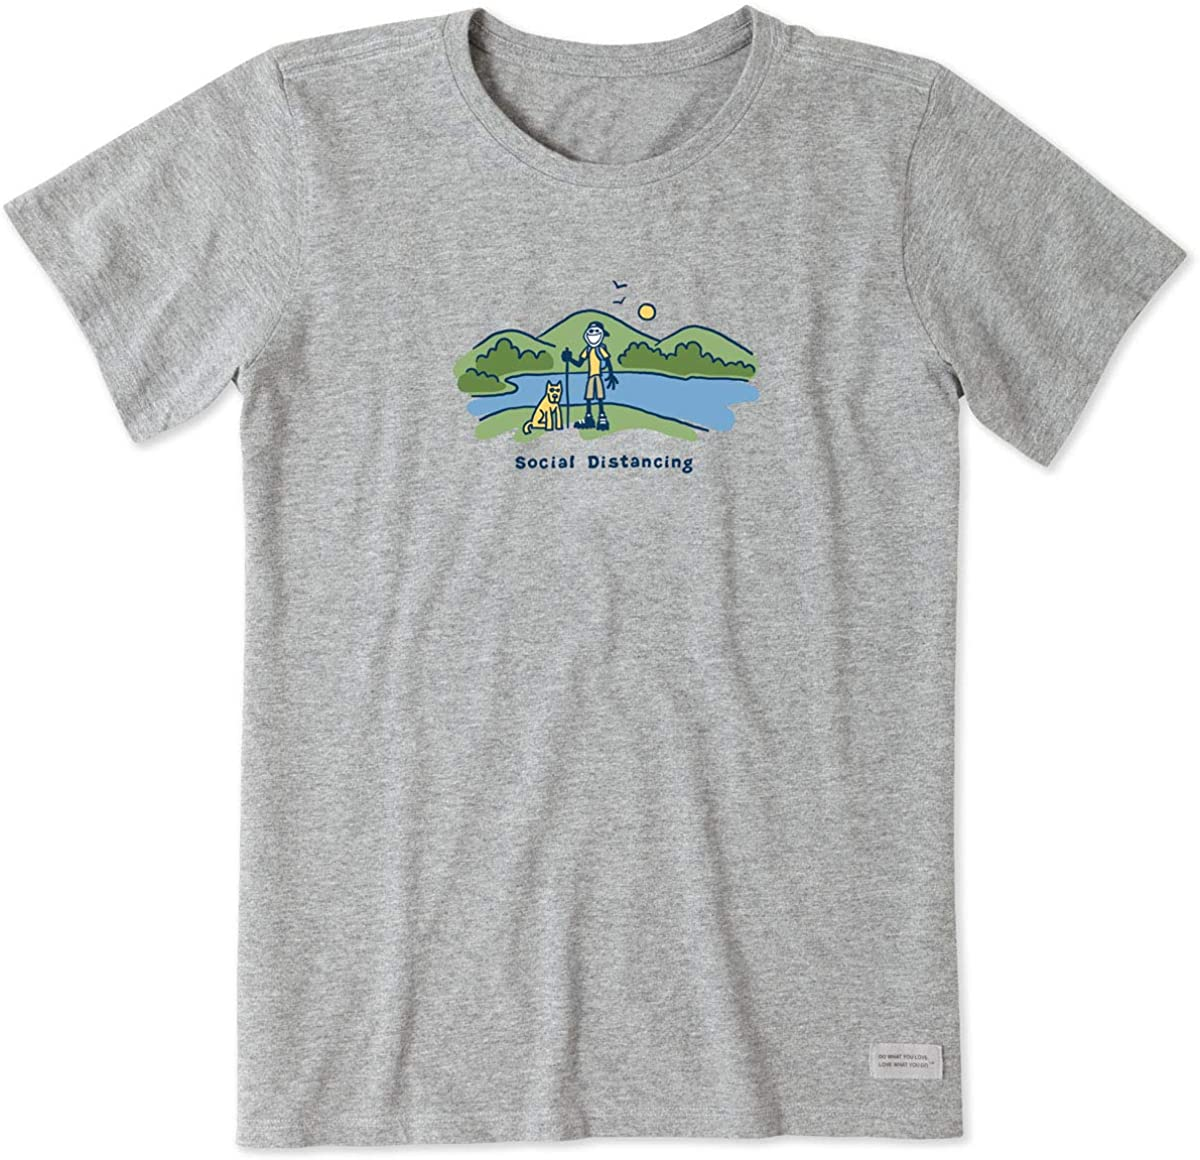 Life is Good Women's Jake and Rocket Social Distancing Crusher Tee, 2XL-Heather Gray